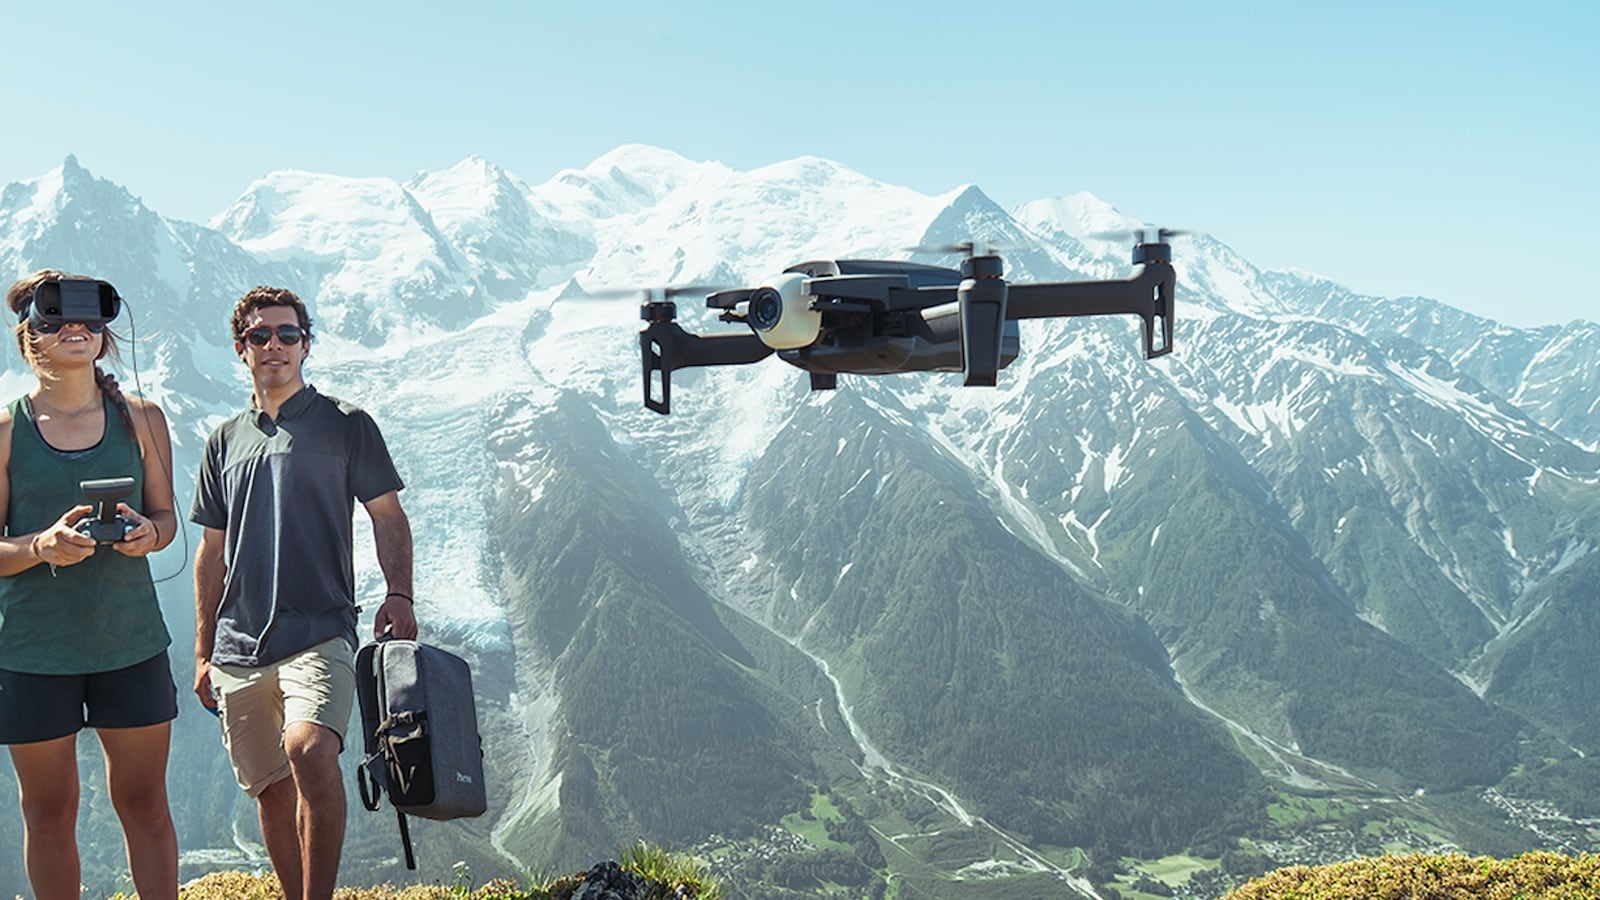 Parrot ANAFI FPV Smartphone-Powered Drone makes you feel like you're flying